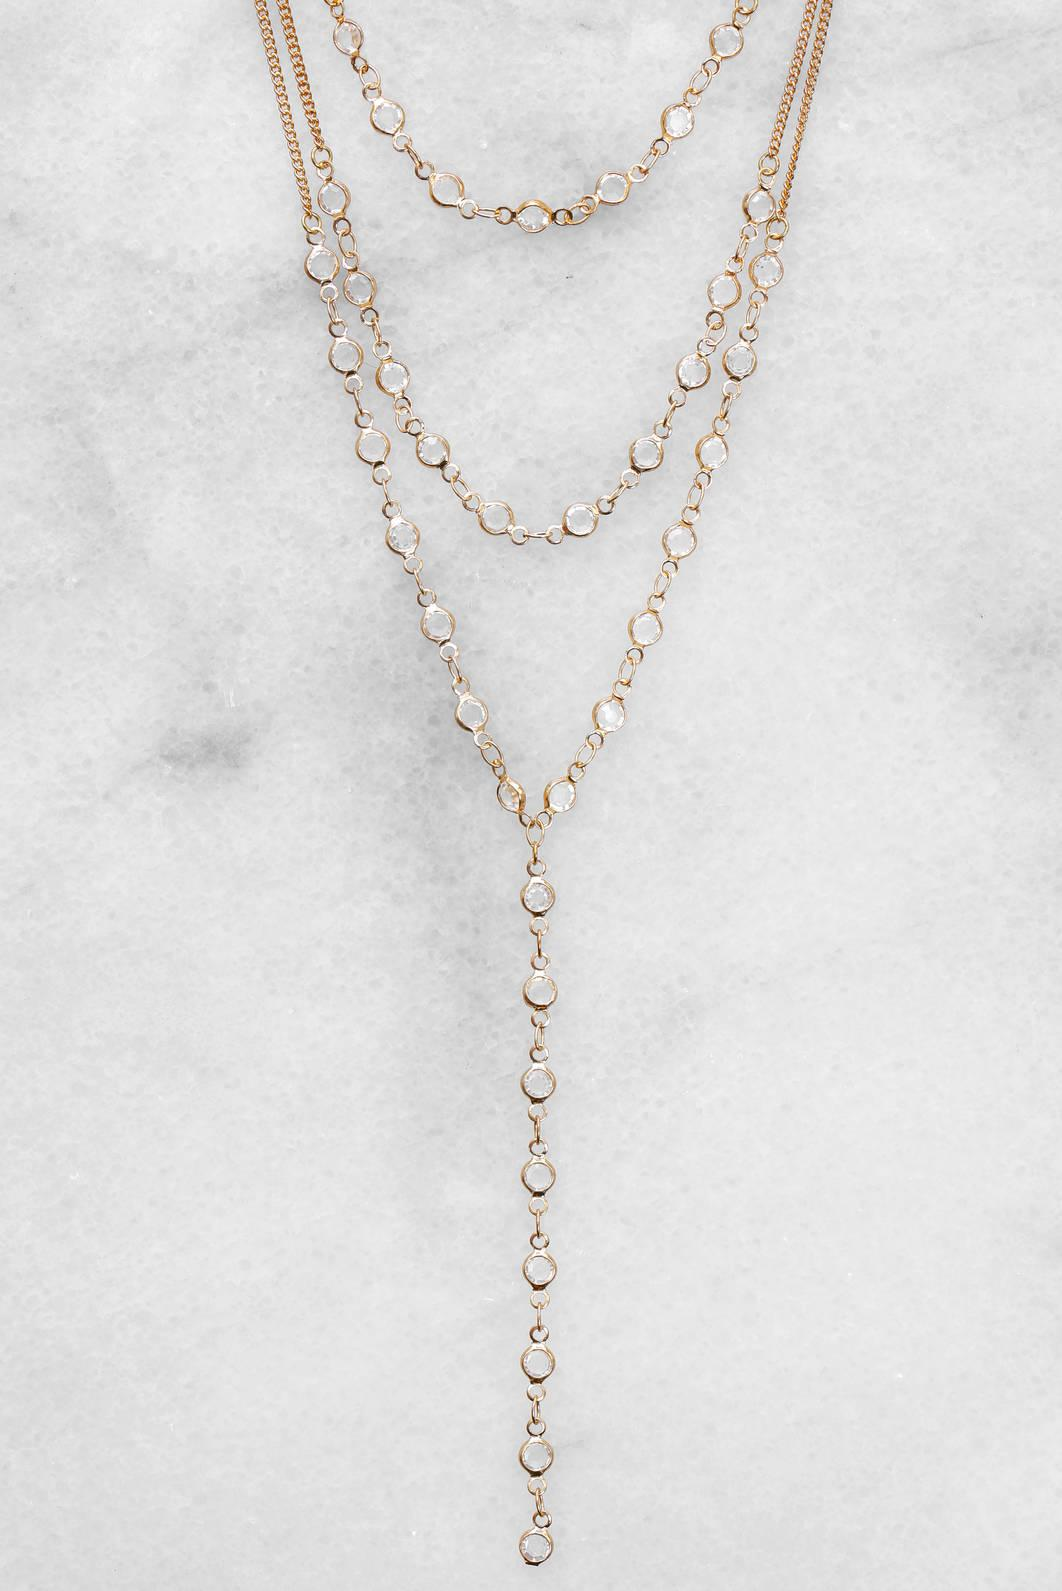 South Moon Under Pearly Y Necklace Gold bvl5uJRxv5